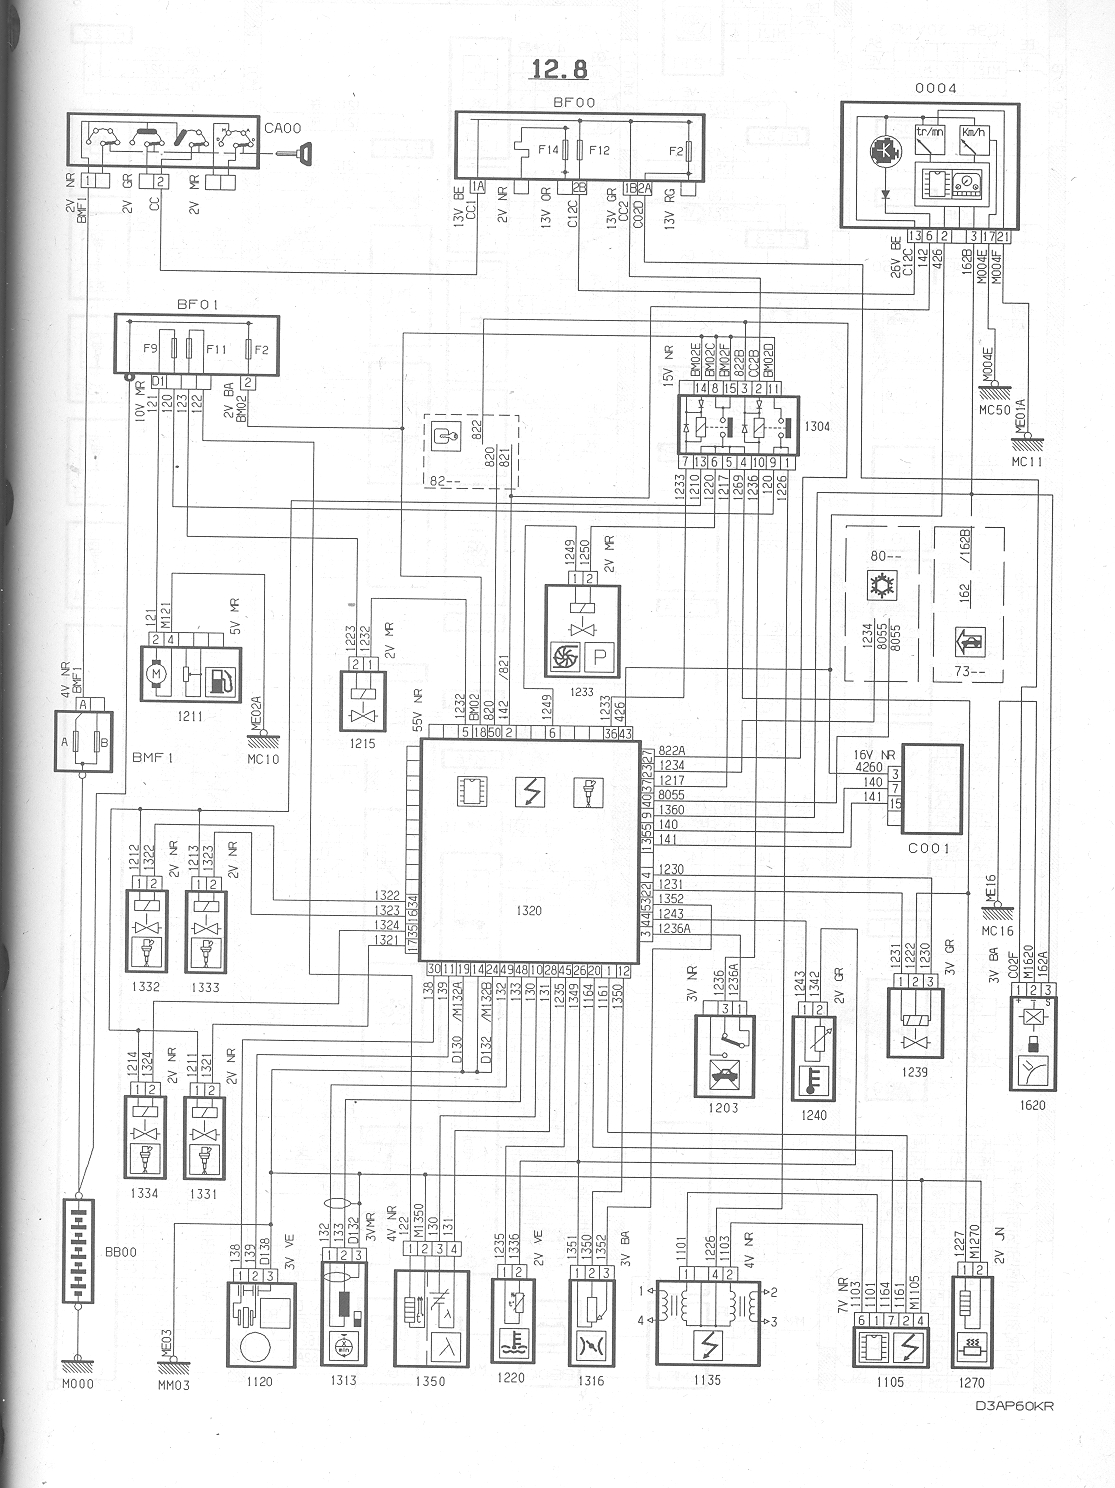 Wiring Diagram For 1987 Citroen 2cv